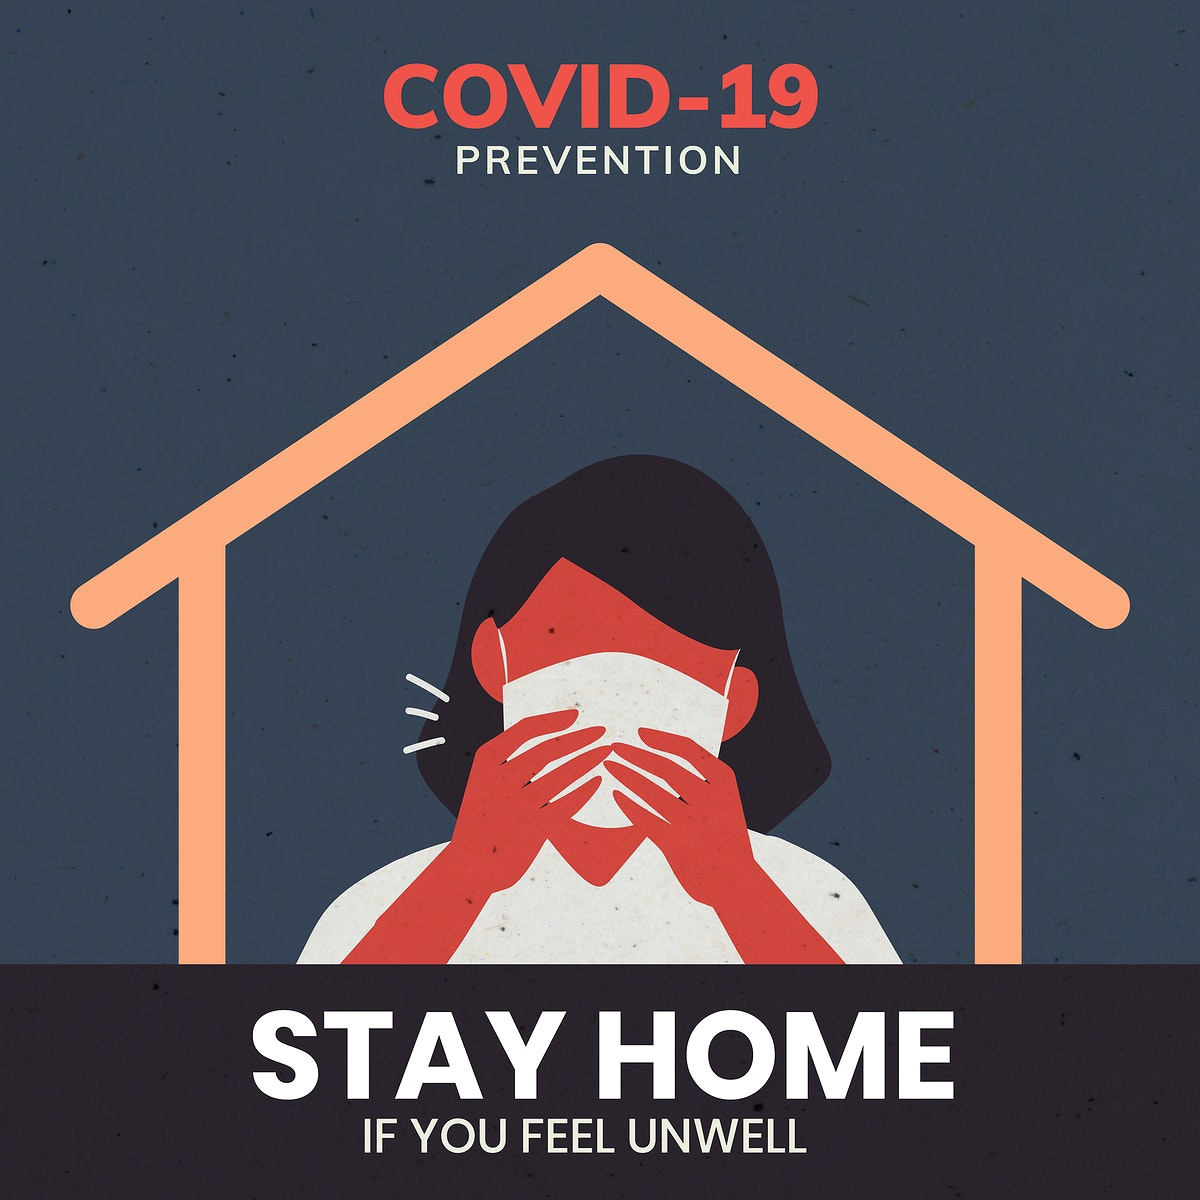 Stay home covid-19 prevention message template vector